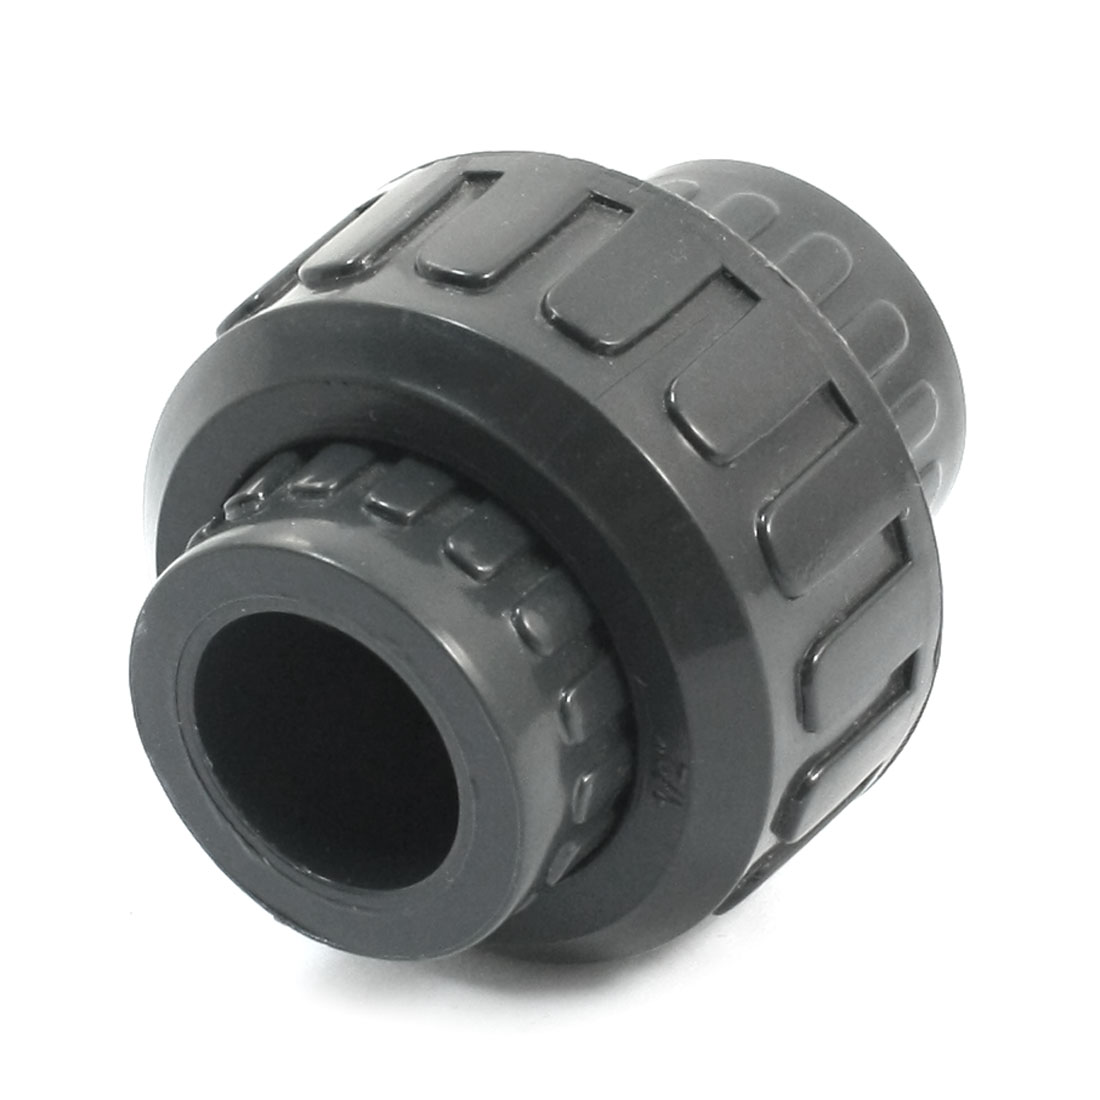 20mm Dia Detachable Drainage Pipe Hose Tube Coupling Connector Fitting Black